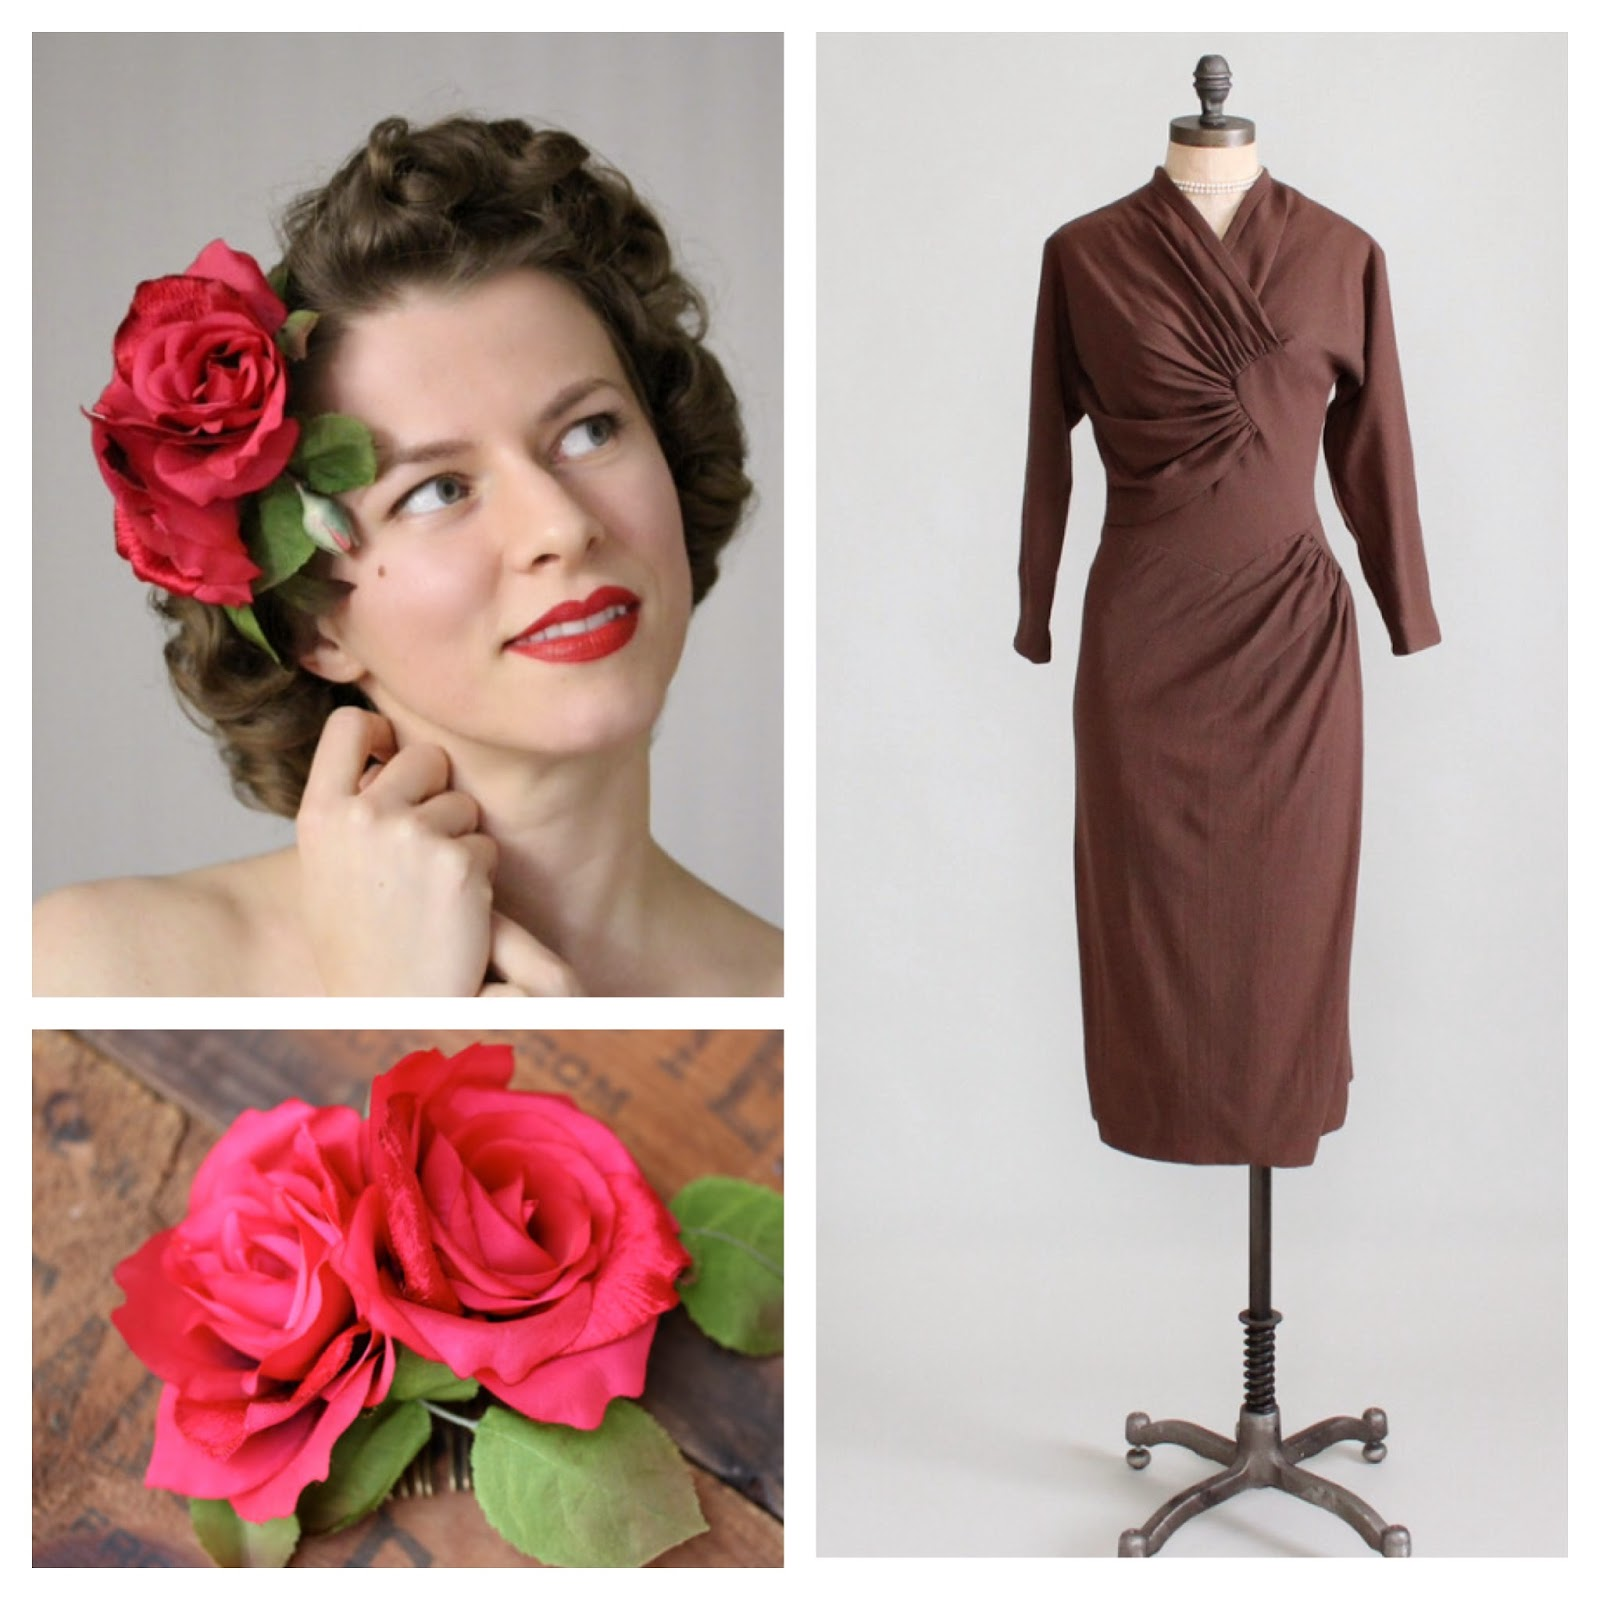 Classic Vintage #rose #hair #vintage #dress #brown